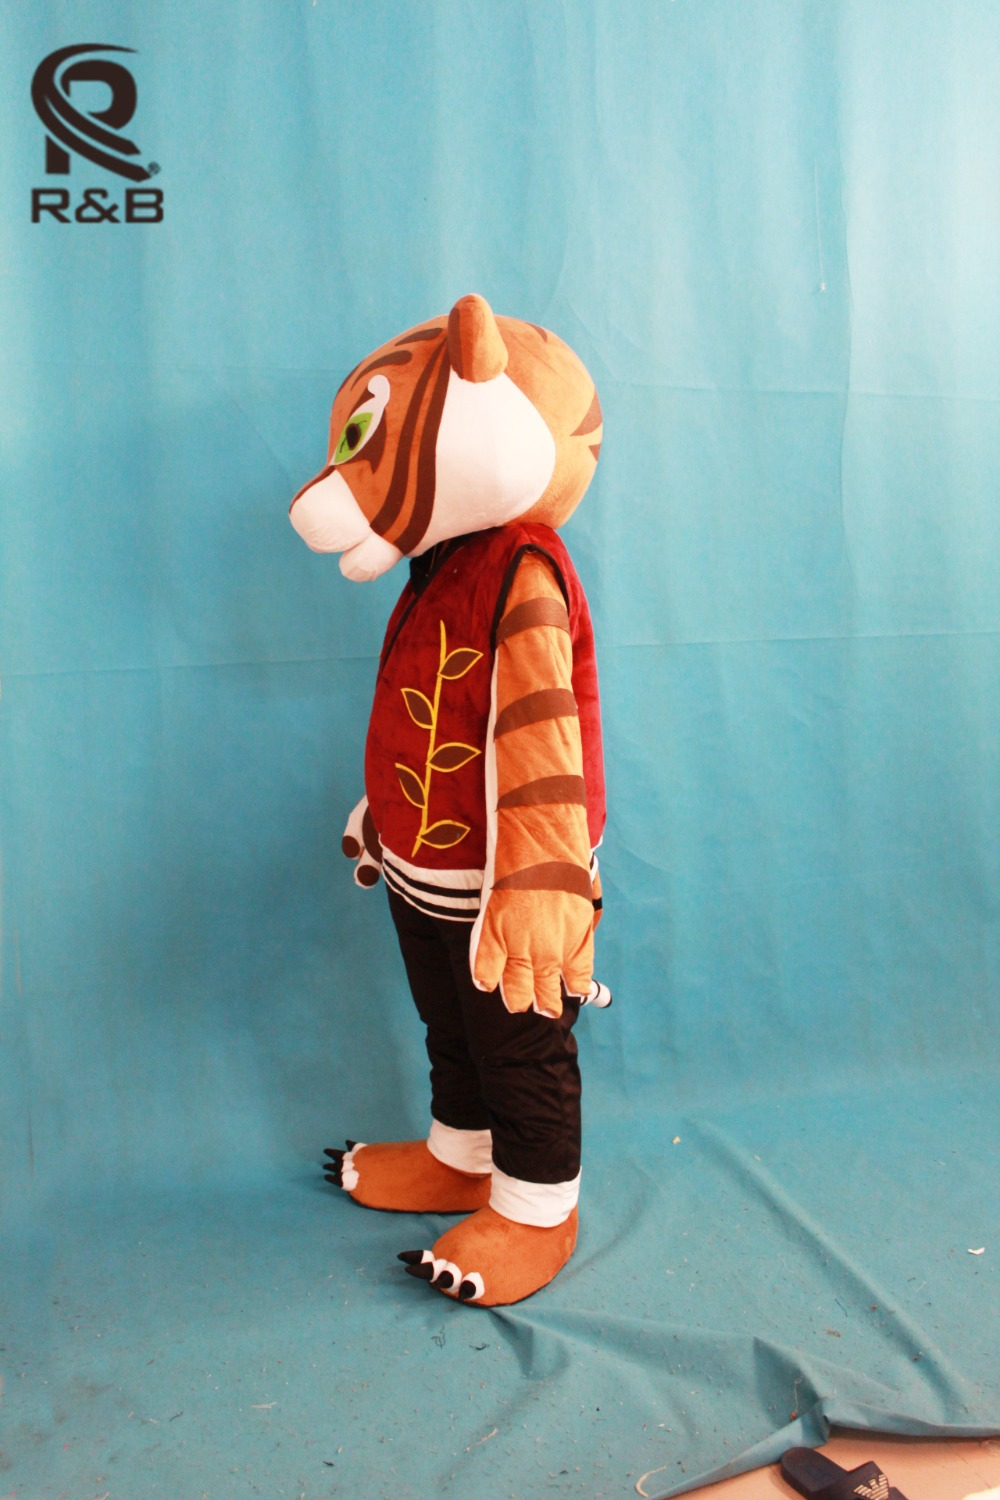 aliexpresscom buy high quality tigress tiger mascot costume kung fu panda cartoon mascot adult costume halloween carnival party costume from reliable - Tigress Halloween Costume